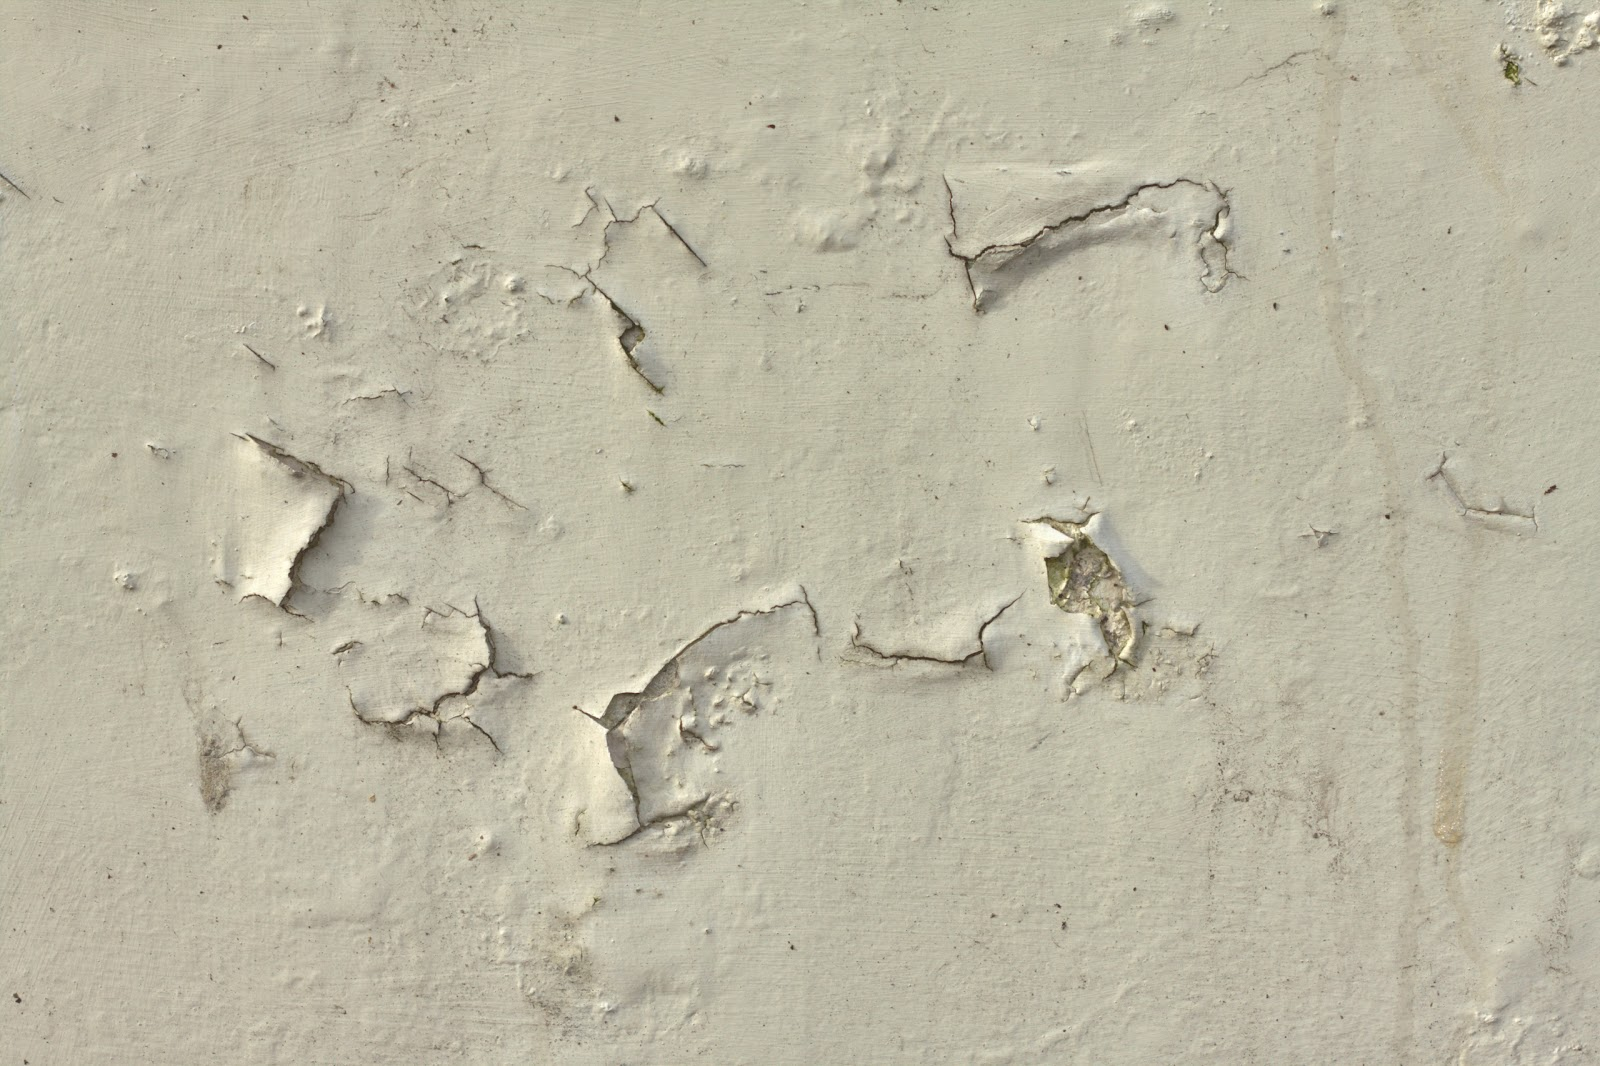 Stucco wall chipped paint feb_2015_2 texture 4770x3178